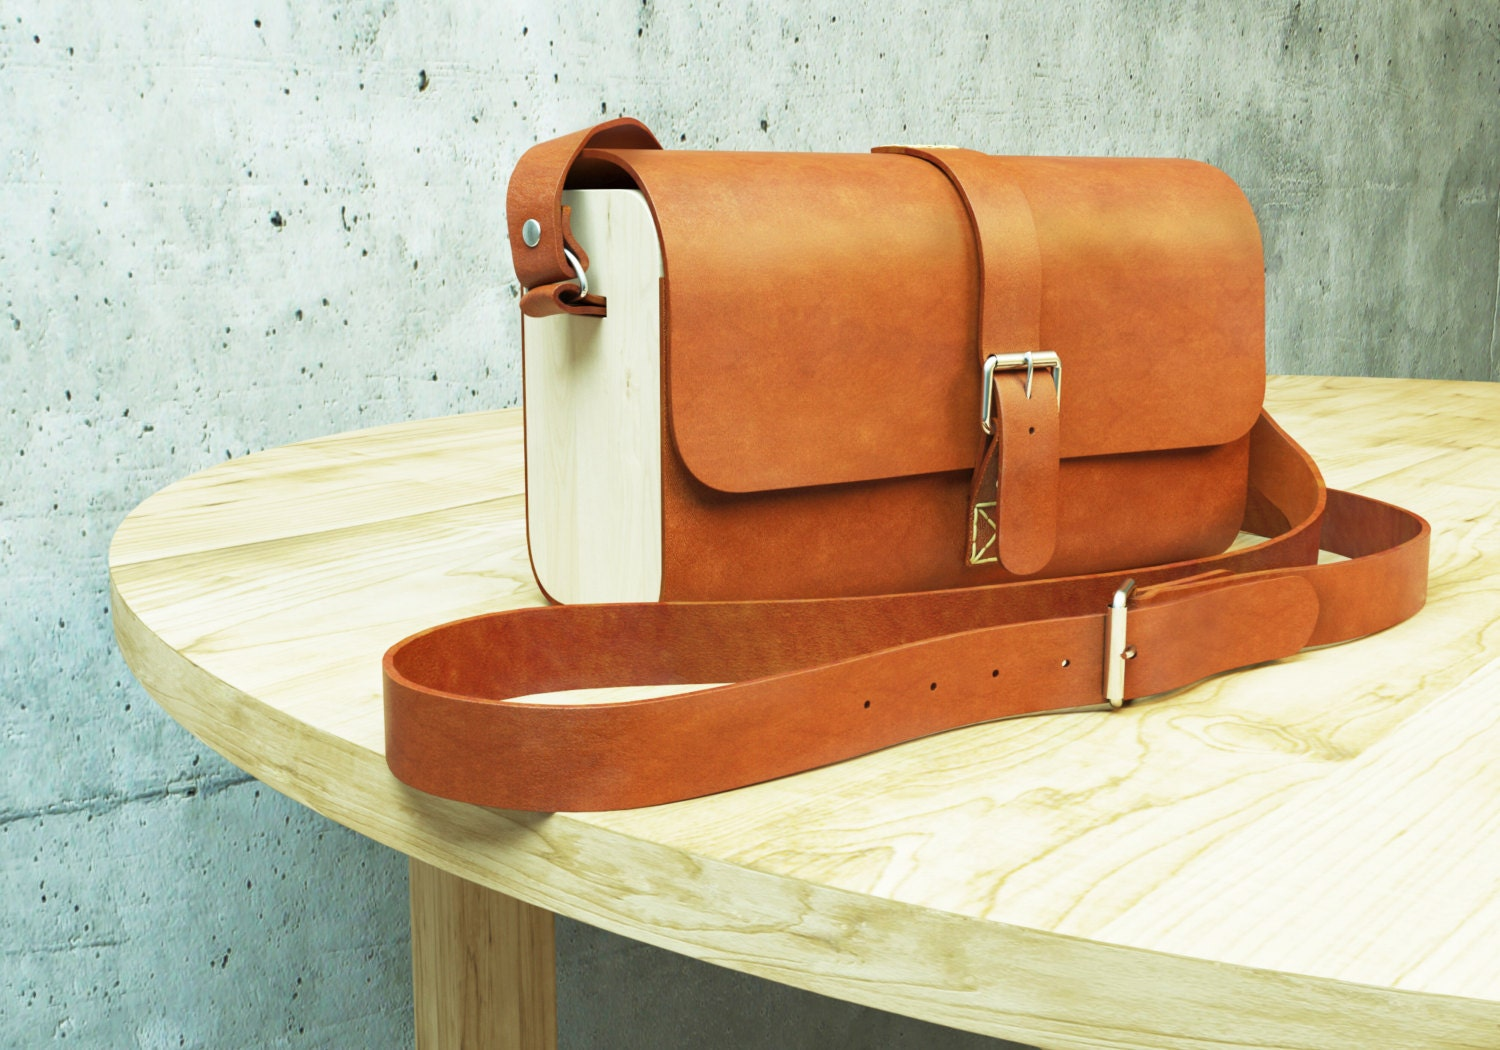 Wood & Leather Bag NATURE Leather Purse Woodbag Wooden